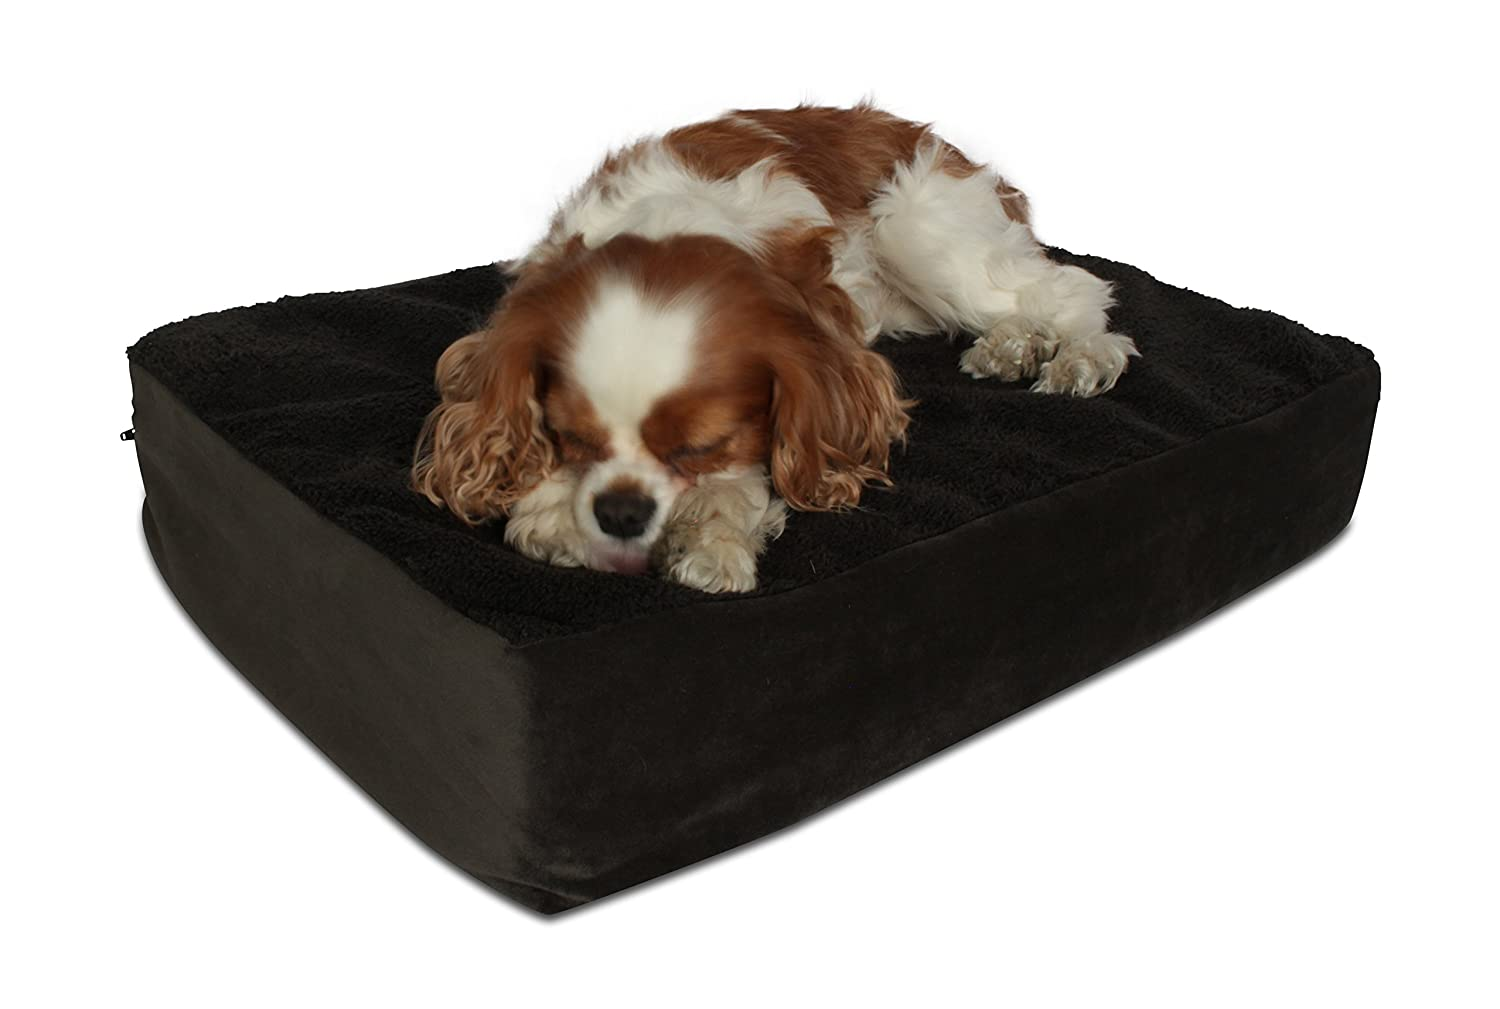 Ocean bluee Small Ocean bluee Small Oliver & Iris Mf-Ob-Sm 4-Inch Orthopedic Memory Foam Dog Bed, Ocean bluee, Small